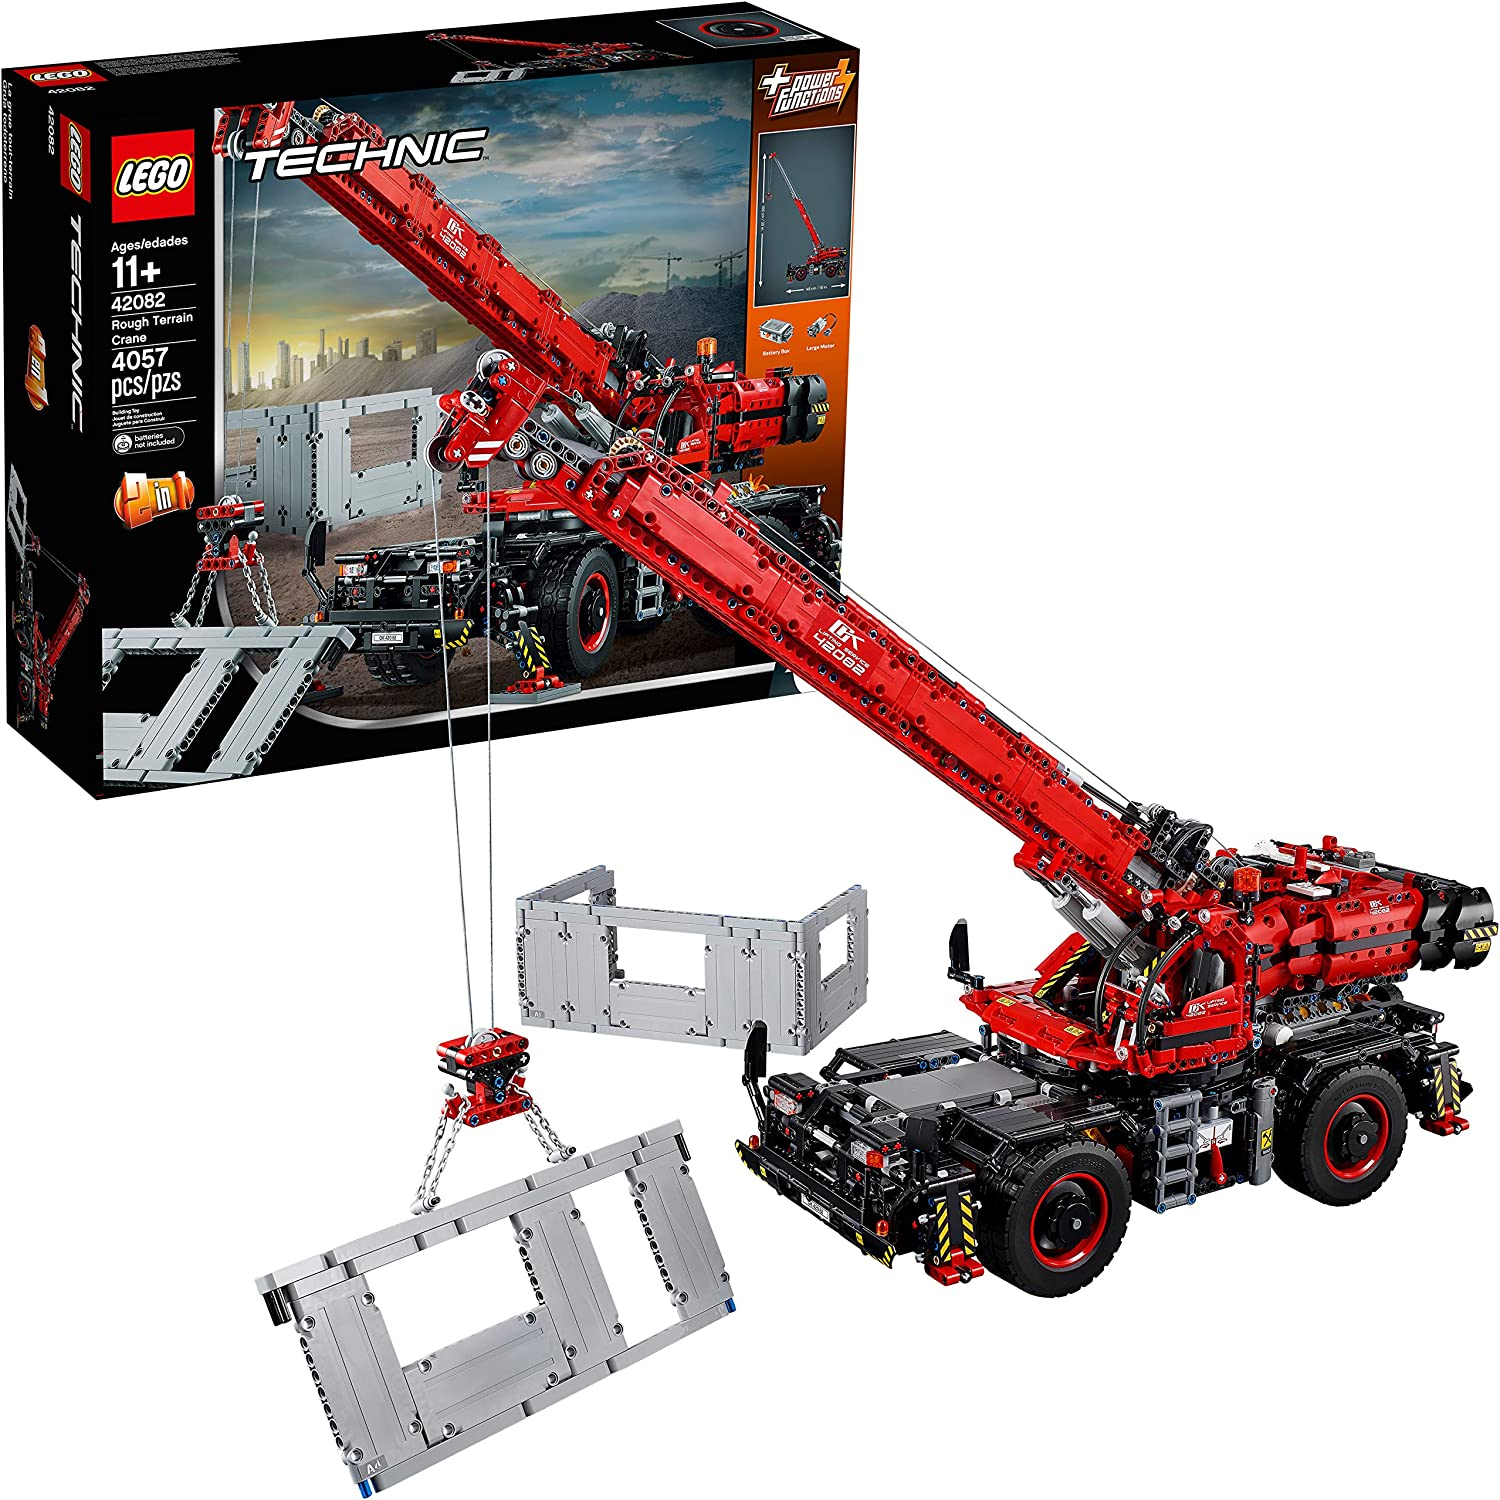 7 Best LEGO Crane Sets Reviews in 2021 Parents Can Buy 8